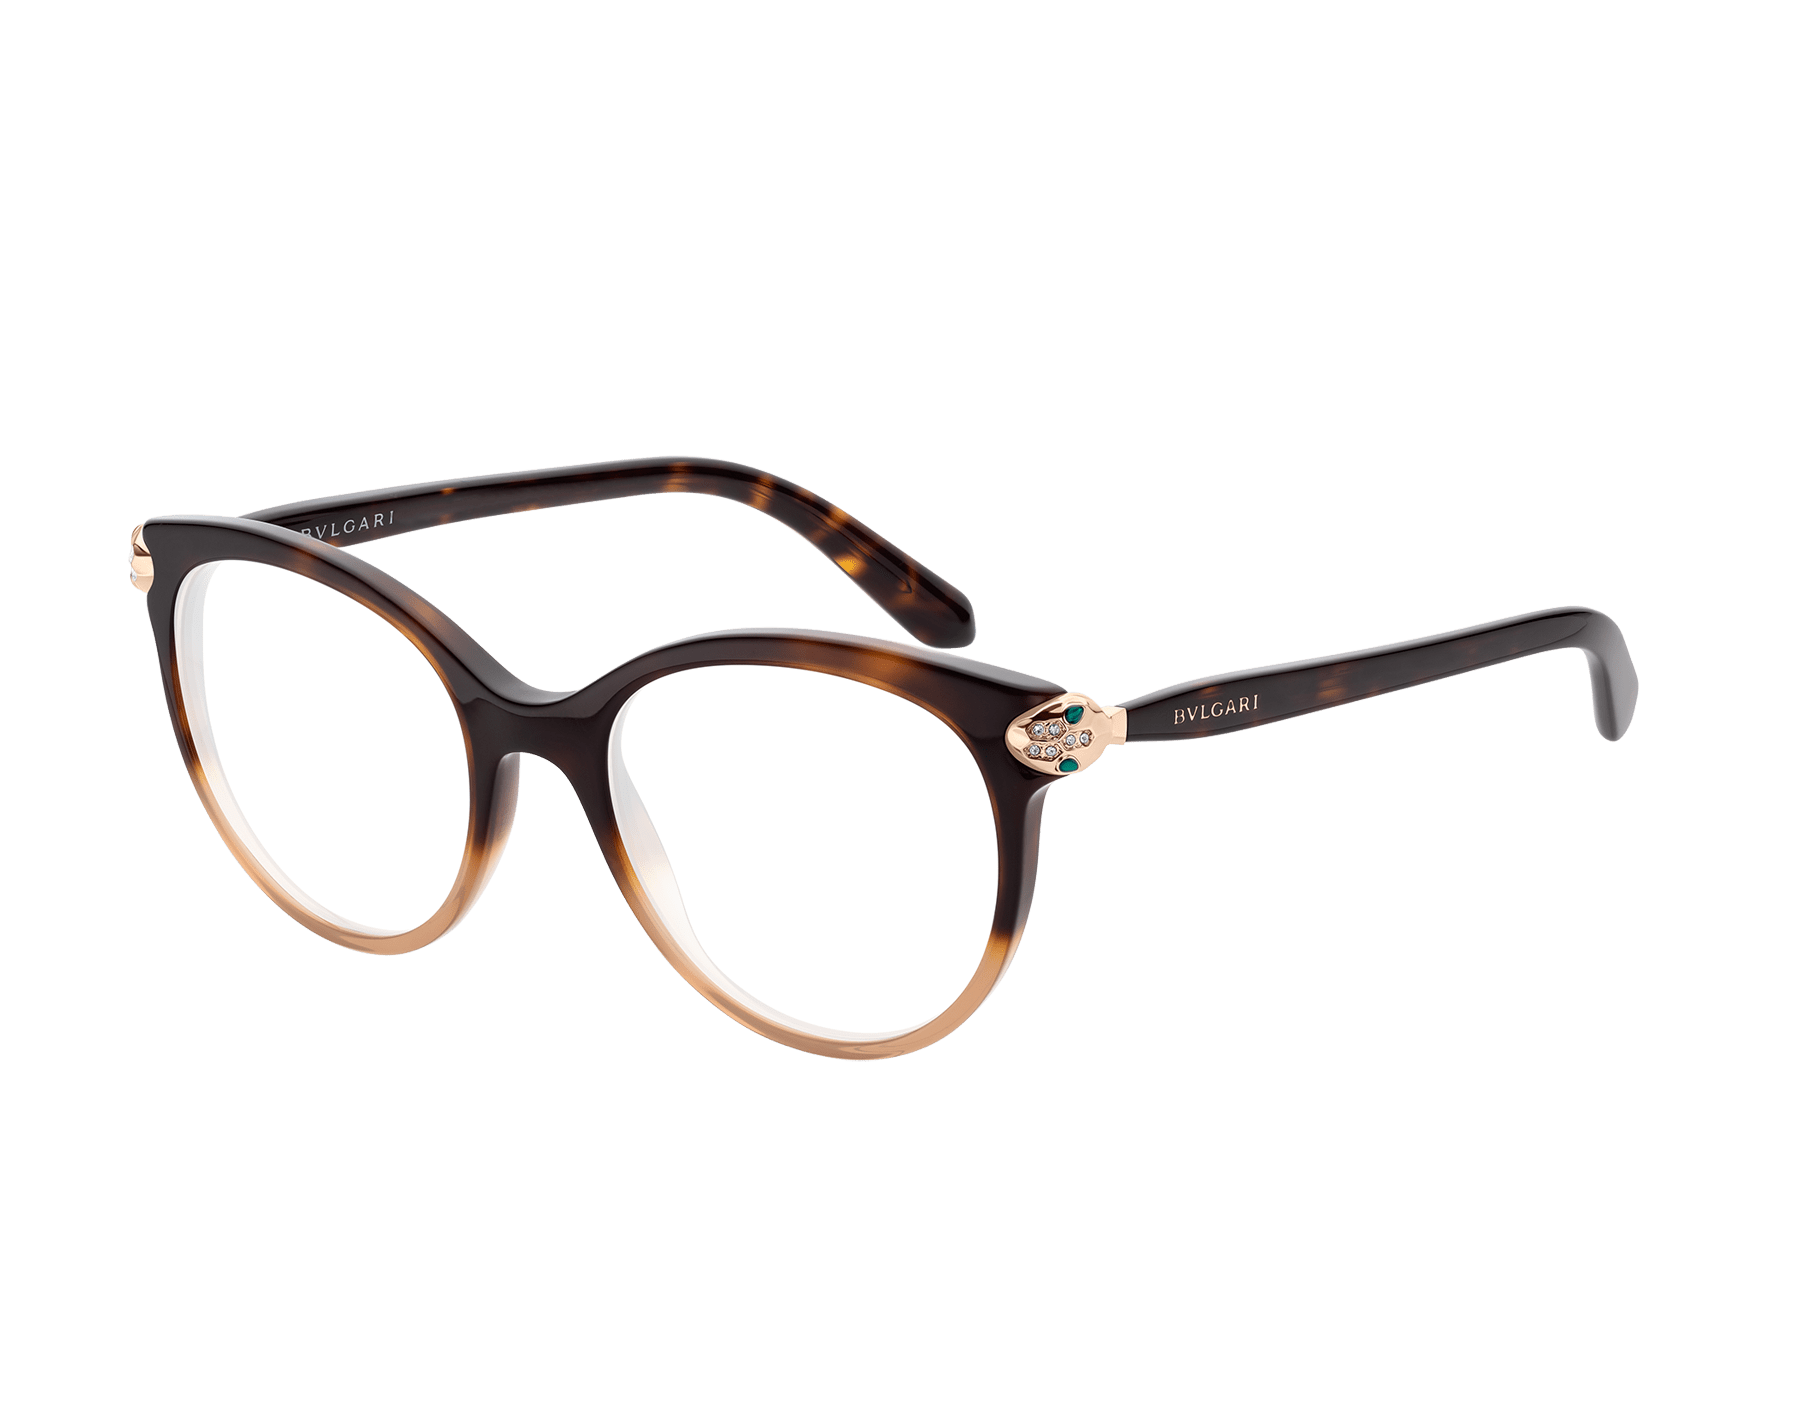 Serpenti cat-eye acetate eyeglasses. 903629 image 1